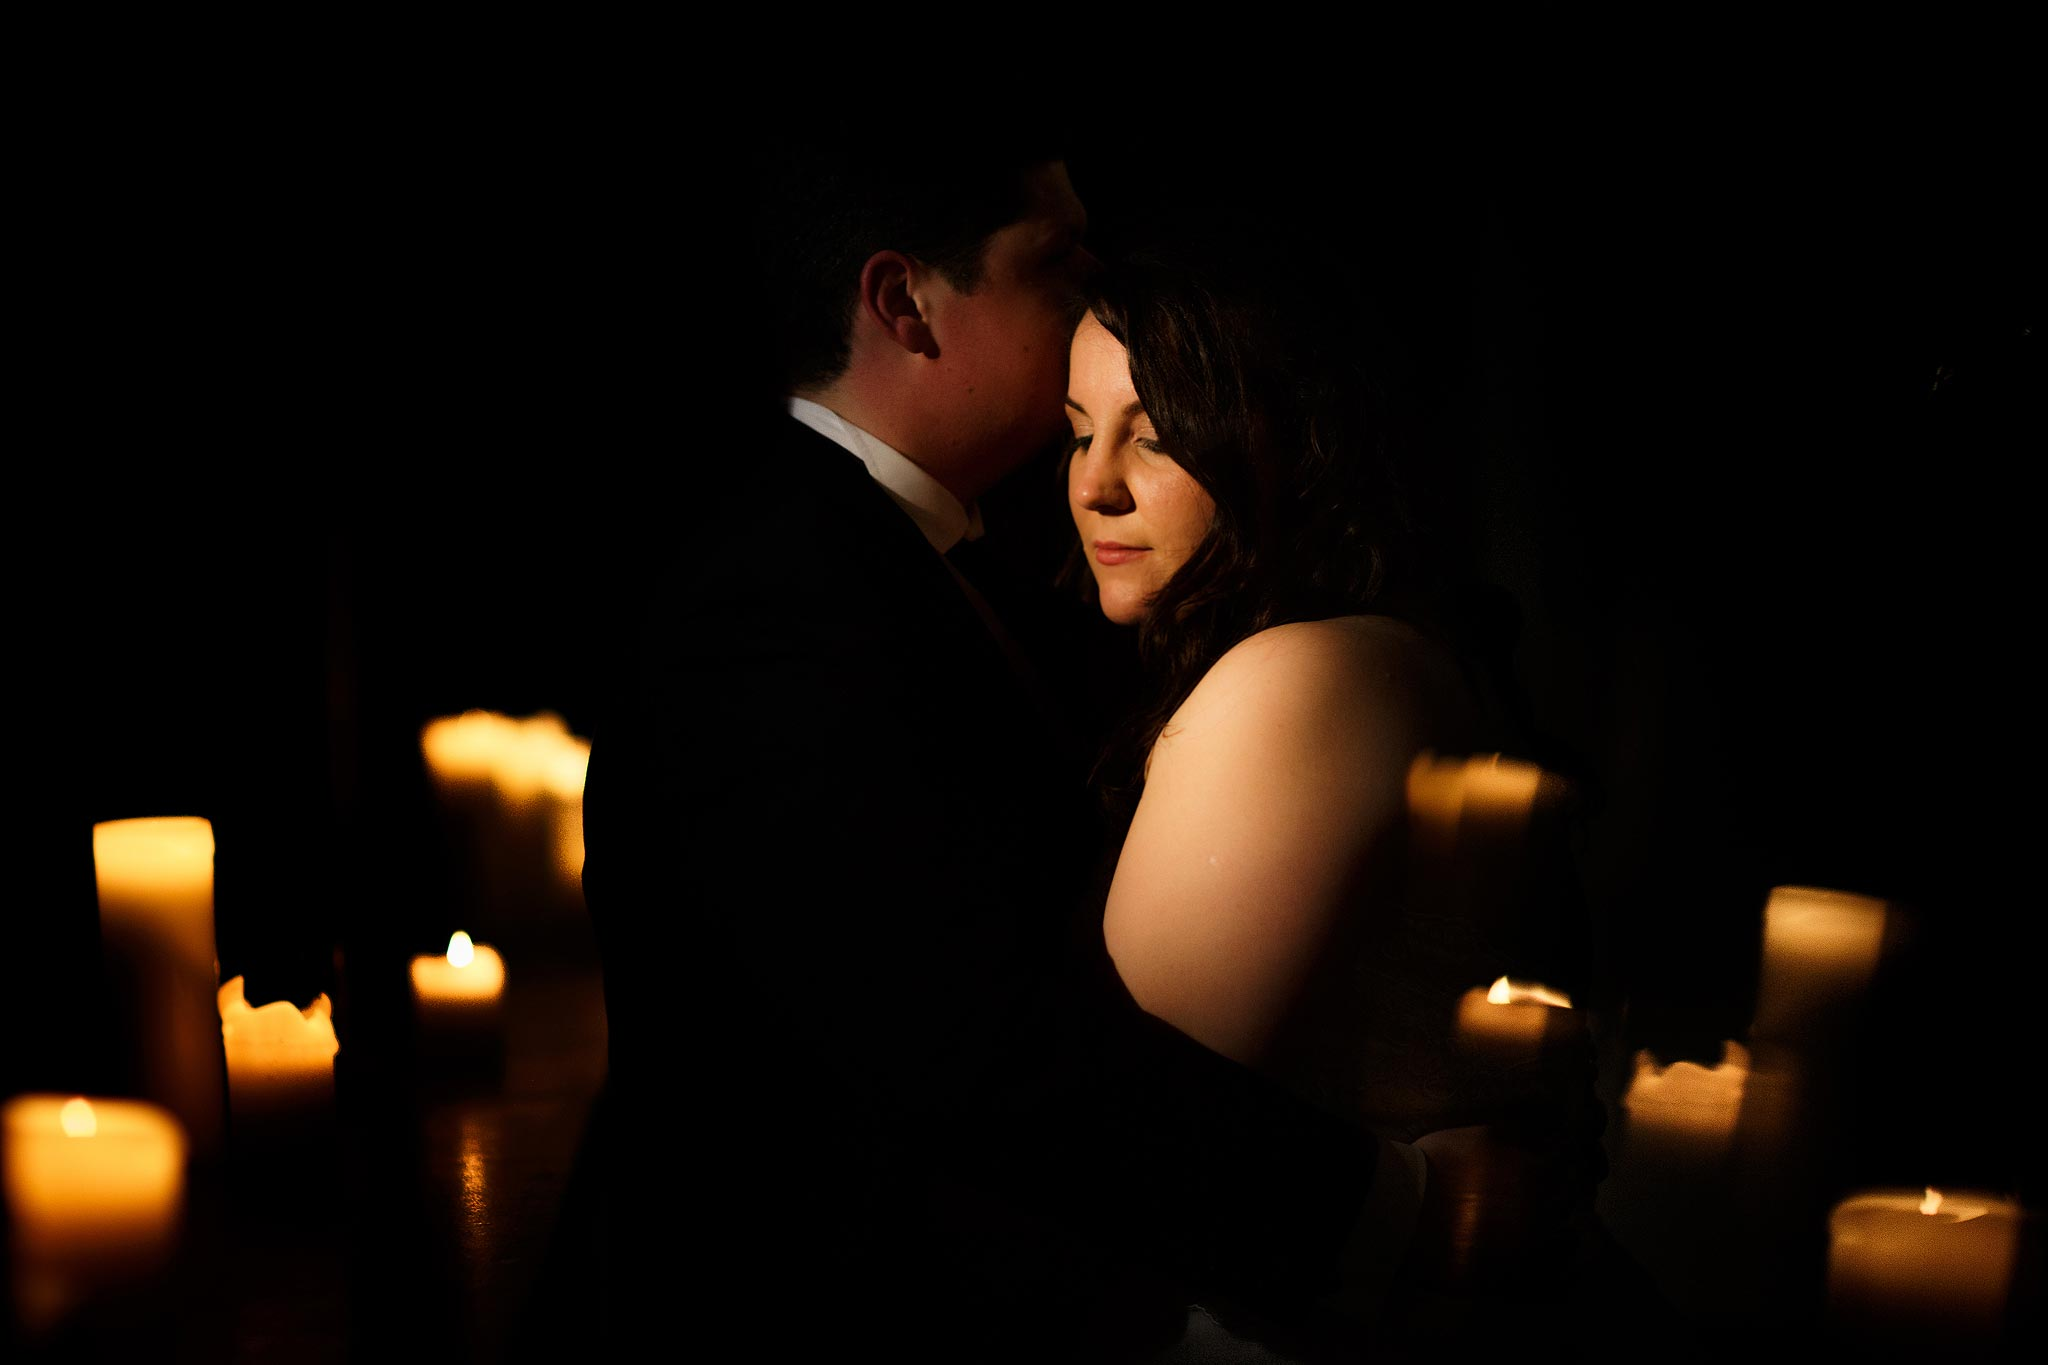 Creative evening portrait of a bride and groom lit by candles at Samlesbury Hall